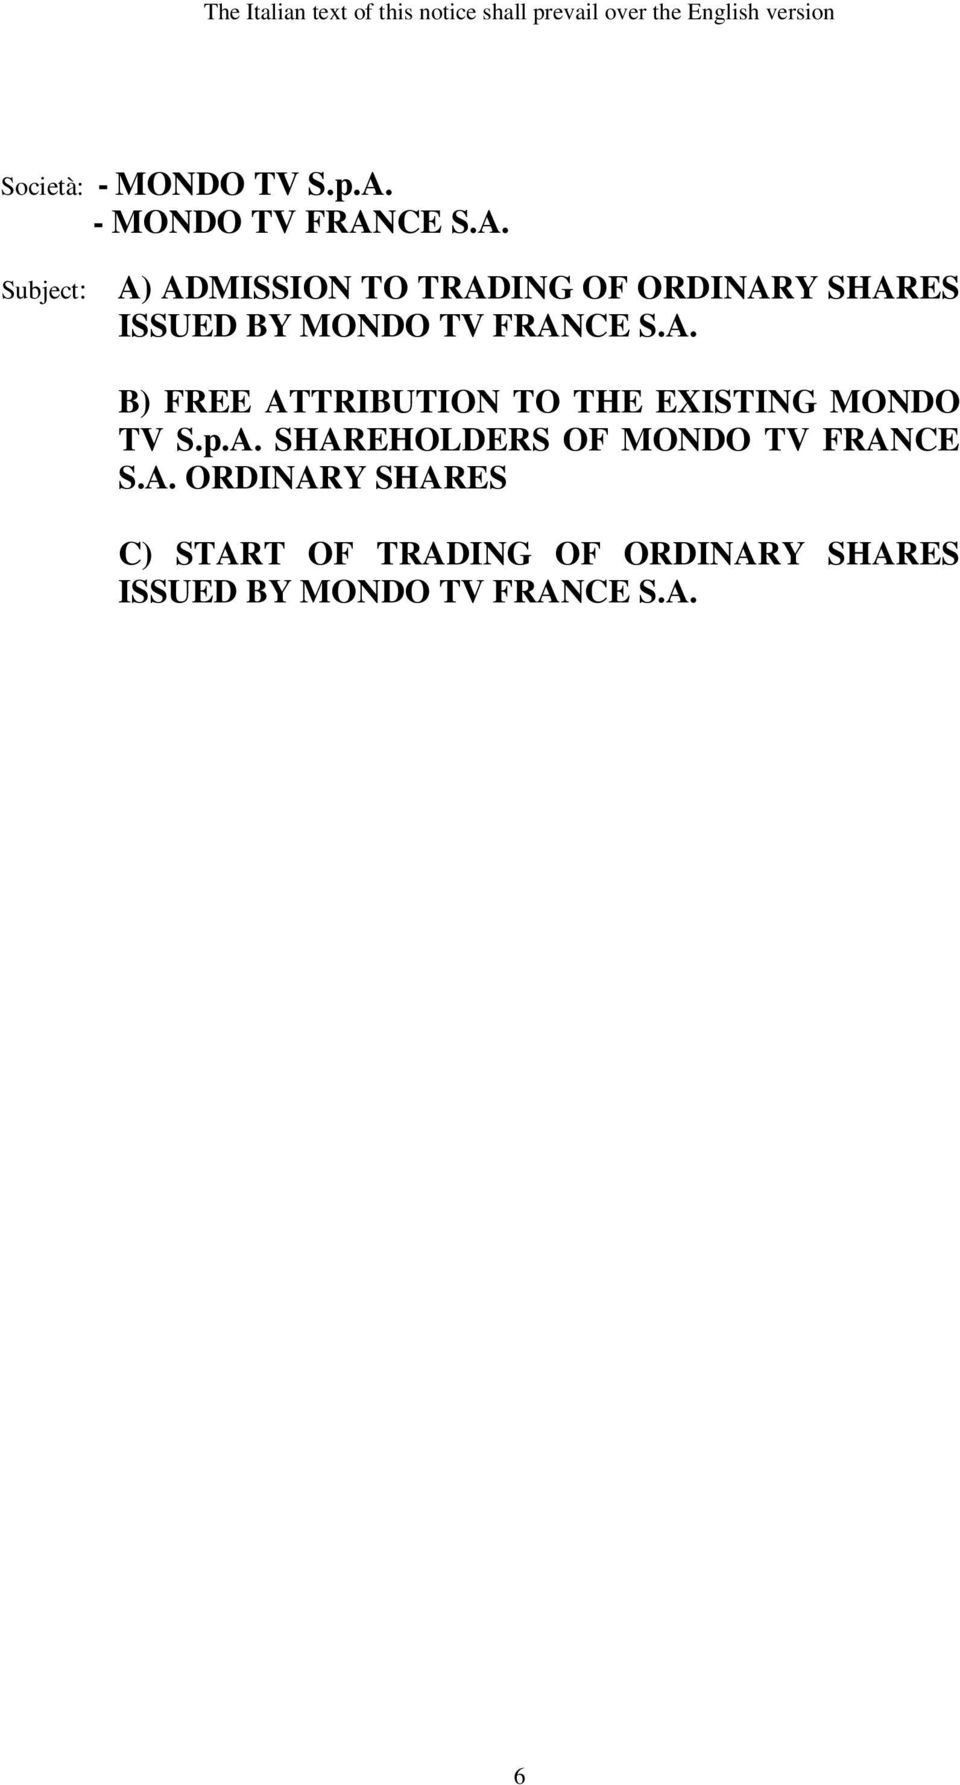 CE S.A. Subject: A) ADMISSION TO TRADING OF ORDINARY SHARES ISSUED BY MONDO TV FRANCE S.A. B) FREE ATTRIBUTION TO THE EXISTING MONDO TV S.